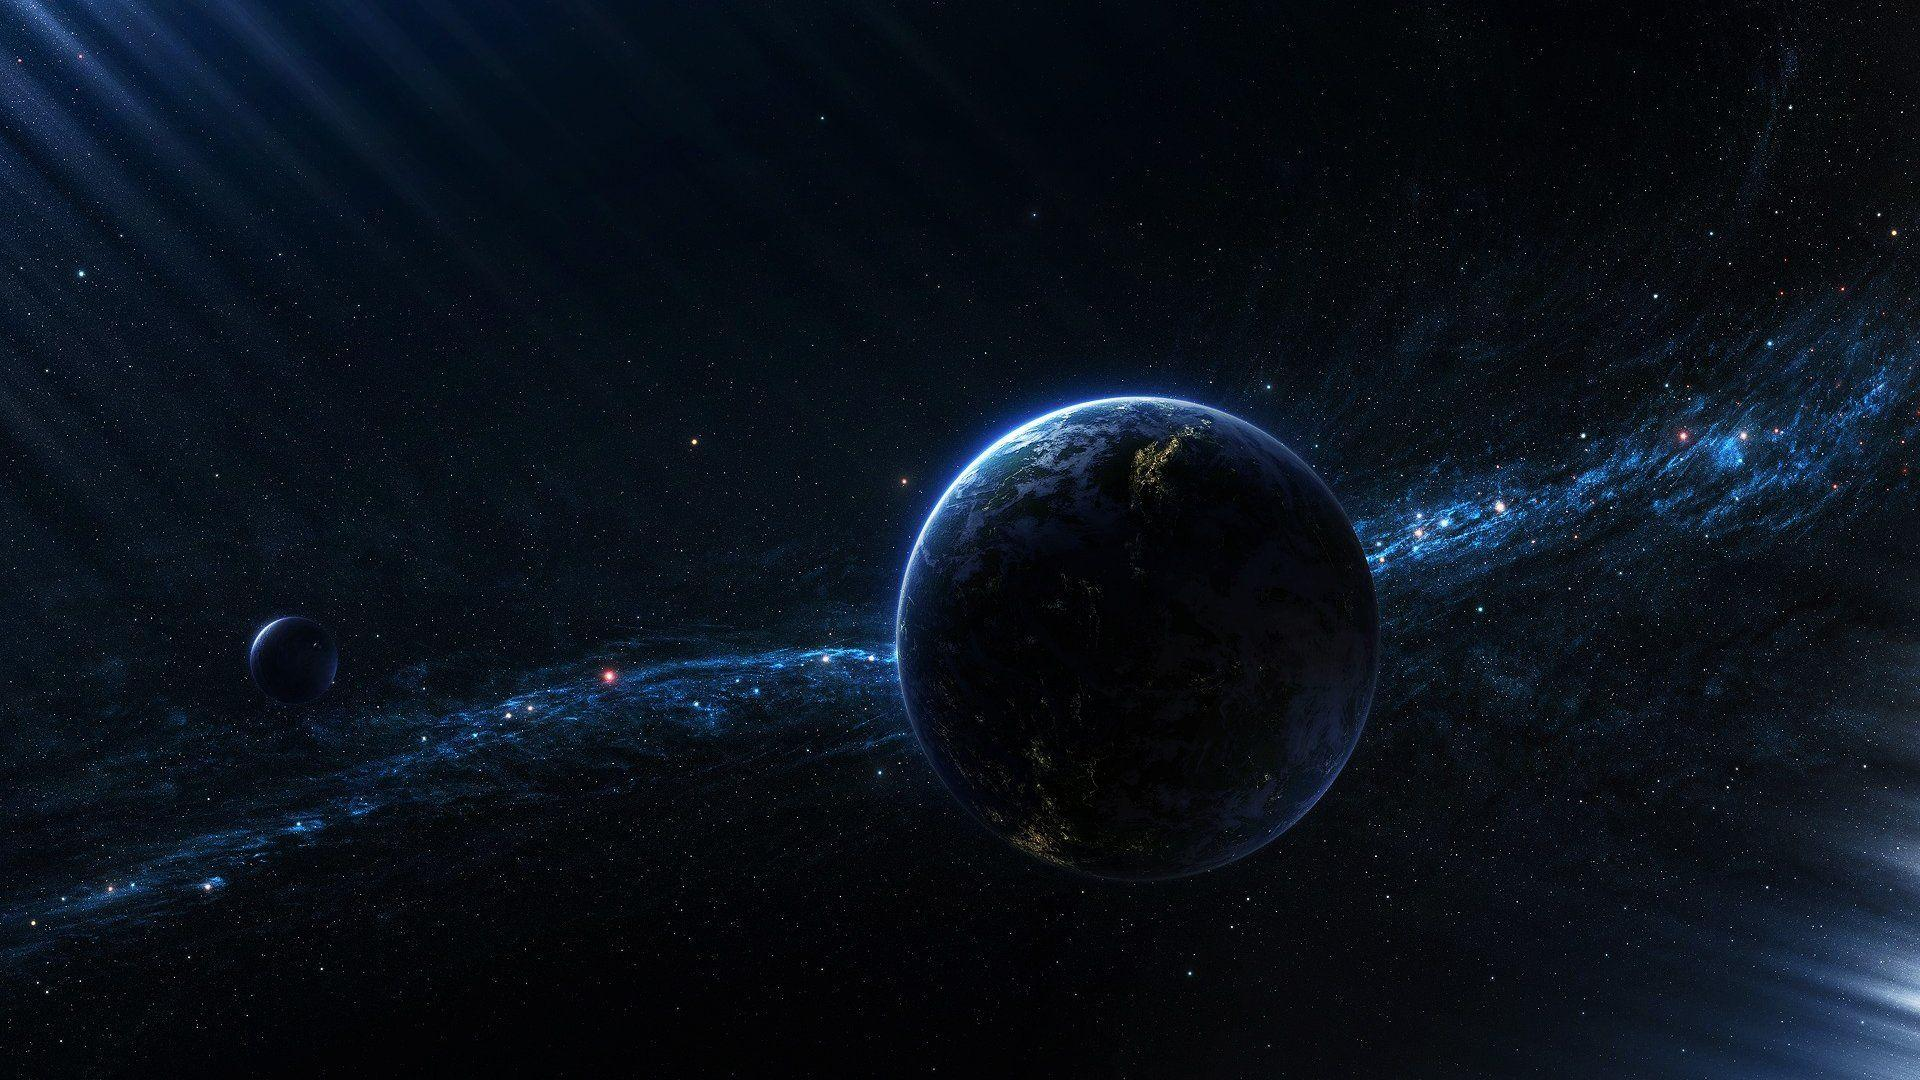 Black Space Wallpapers Hd Wallpaper Cave